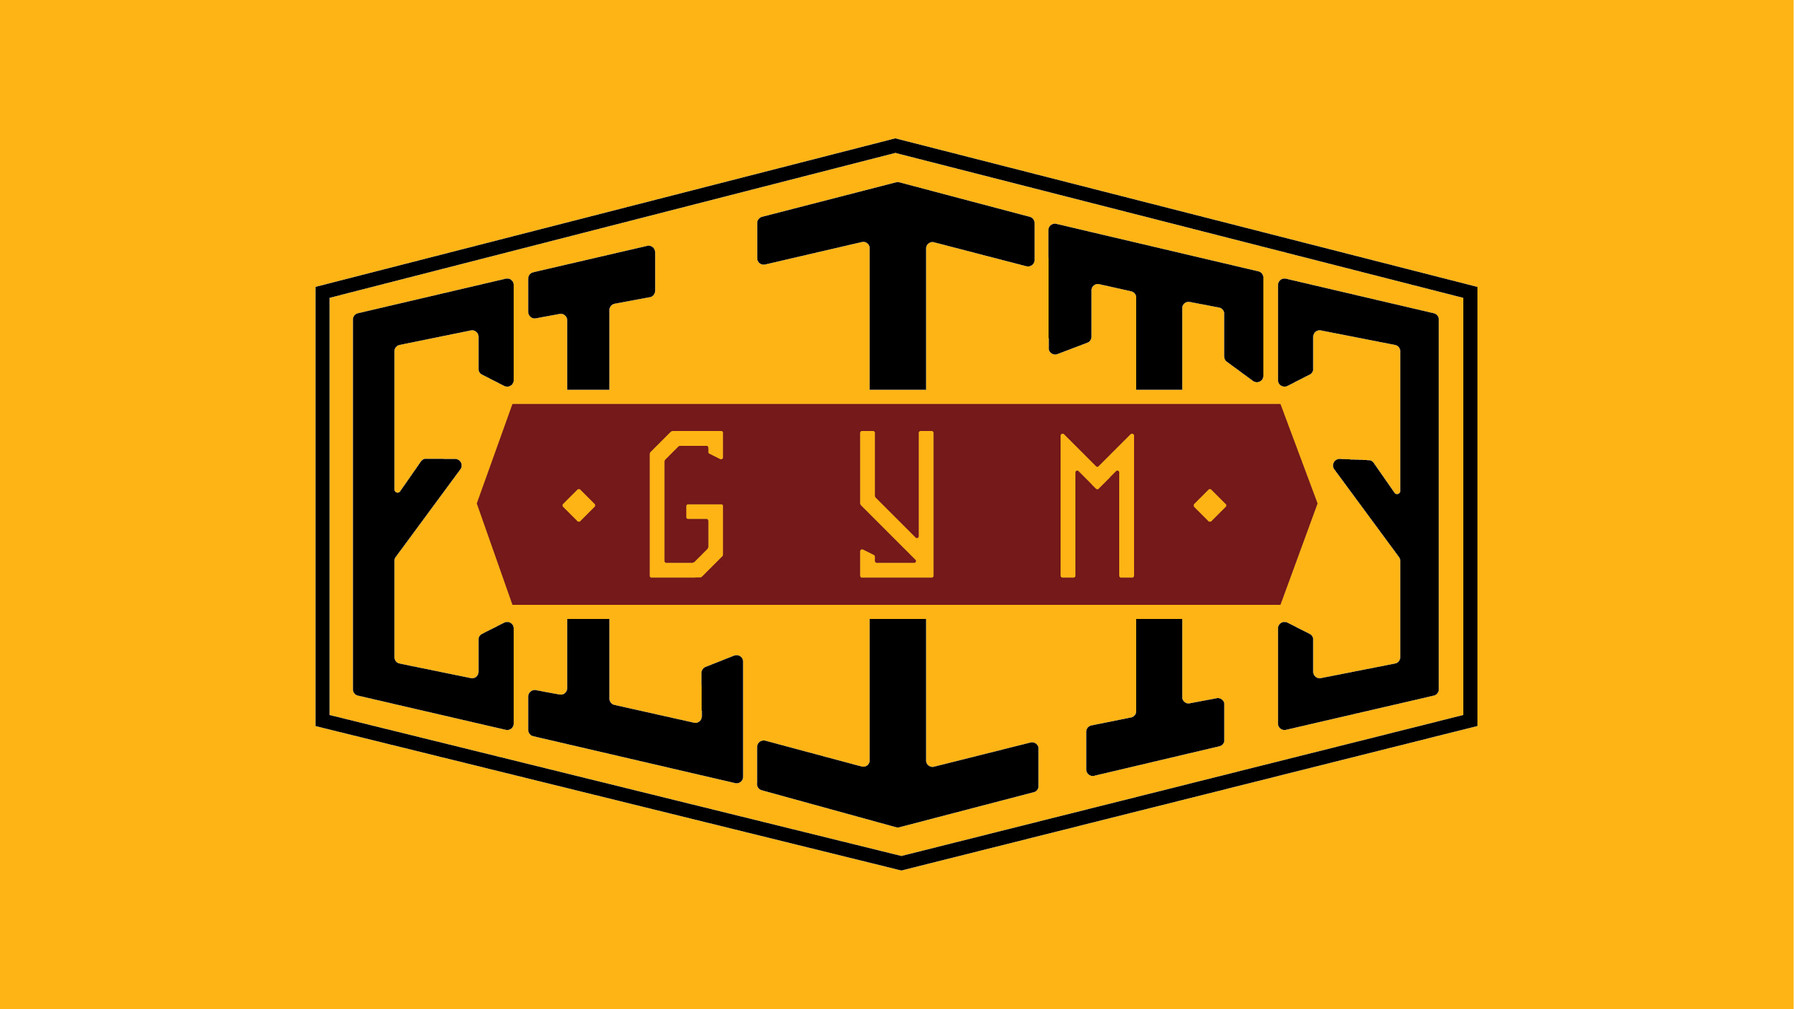 Elite Gym Logo Study_16x9.jpg